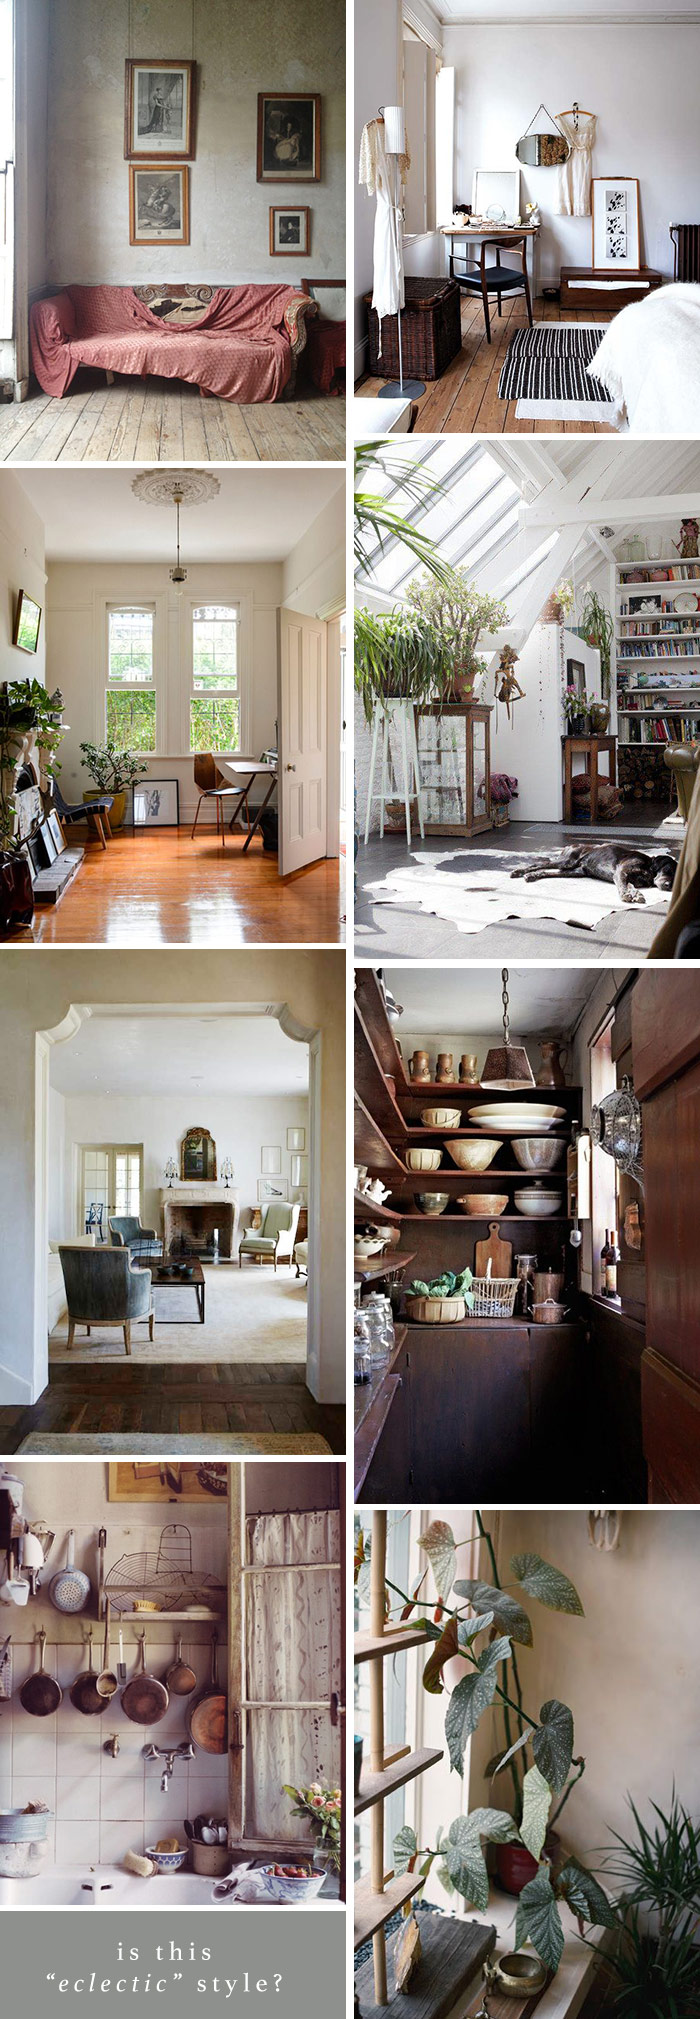 eclectic-vintage-interiors-1